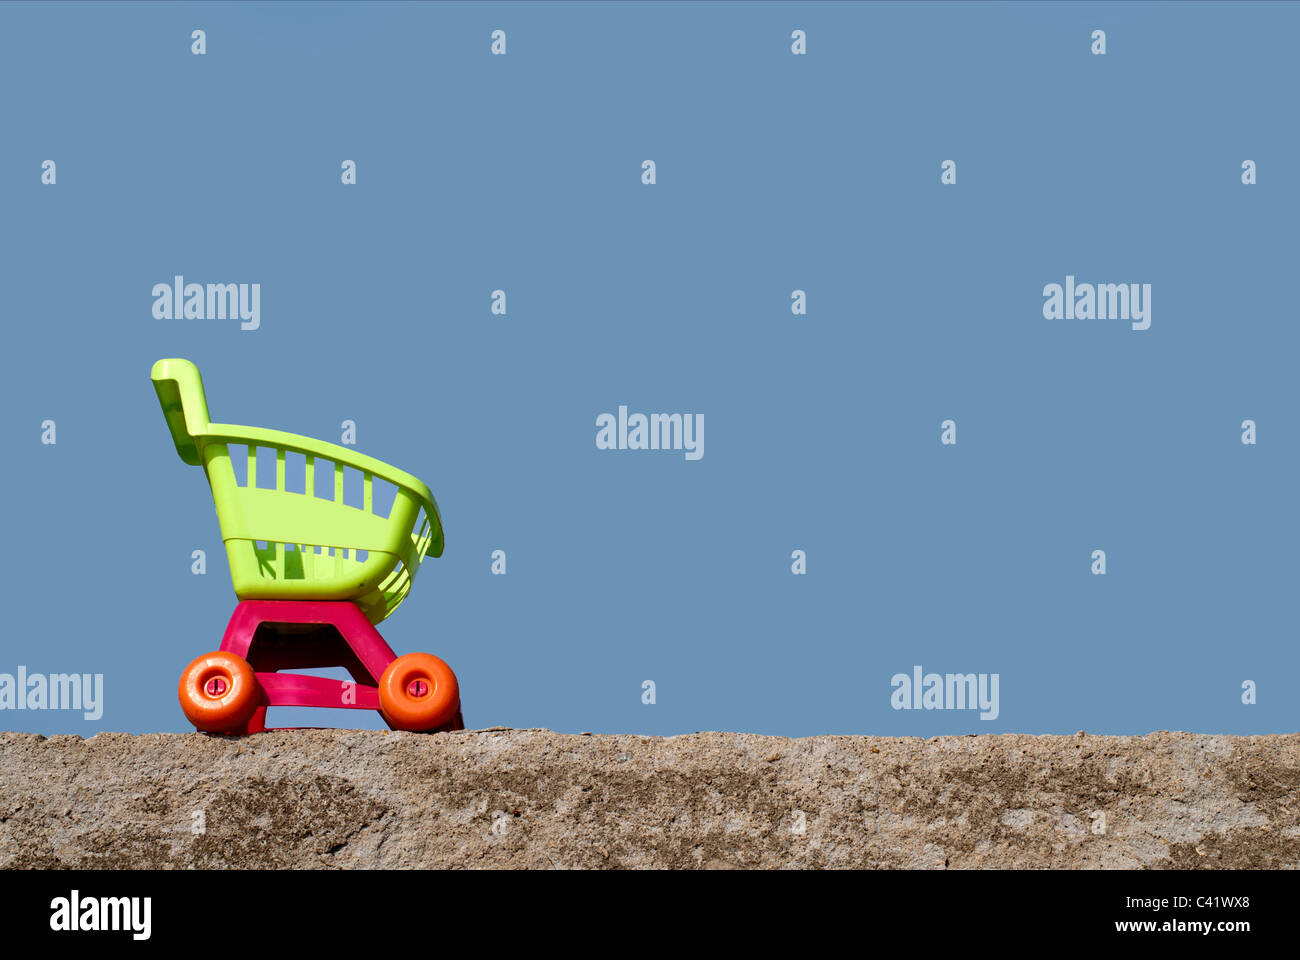 shopping trolley sitting on a rock wall,on a blue sky,shopping cart,shopping buggy,blue sky - Stock Image